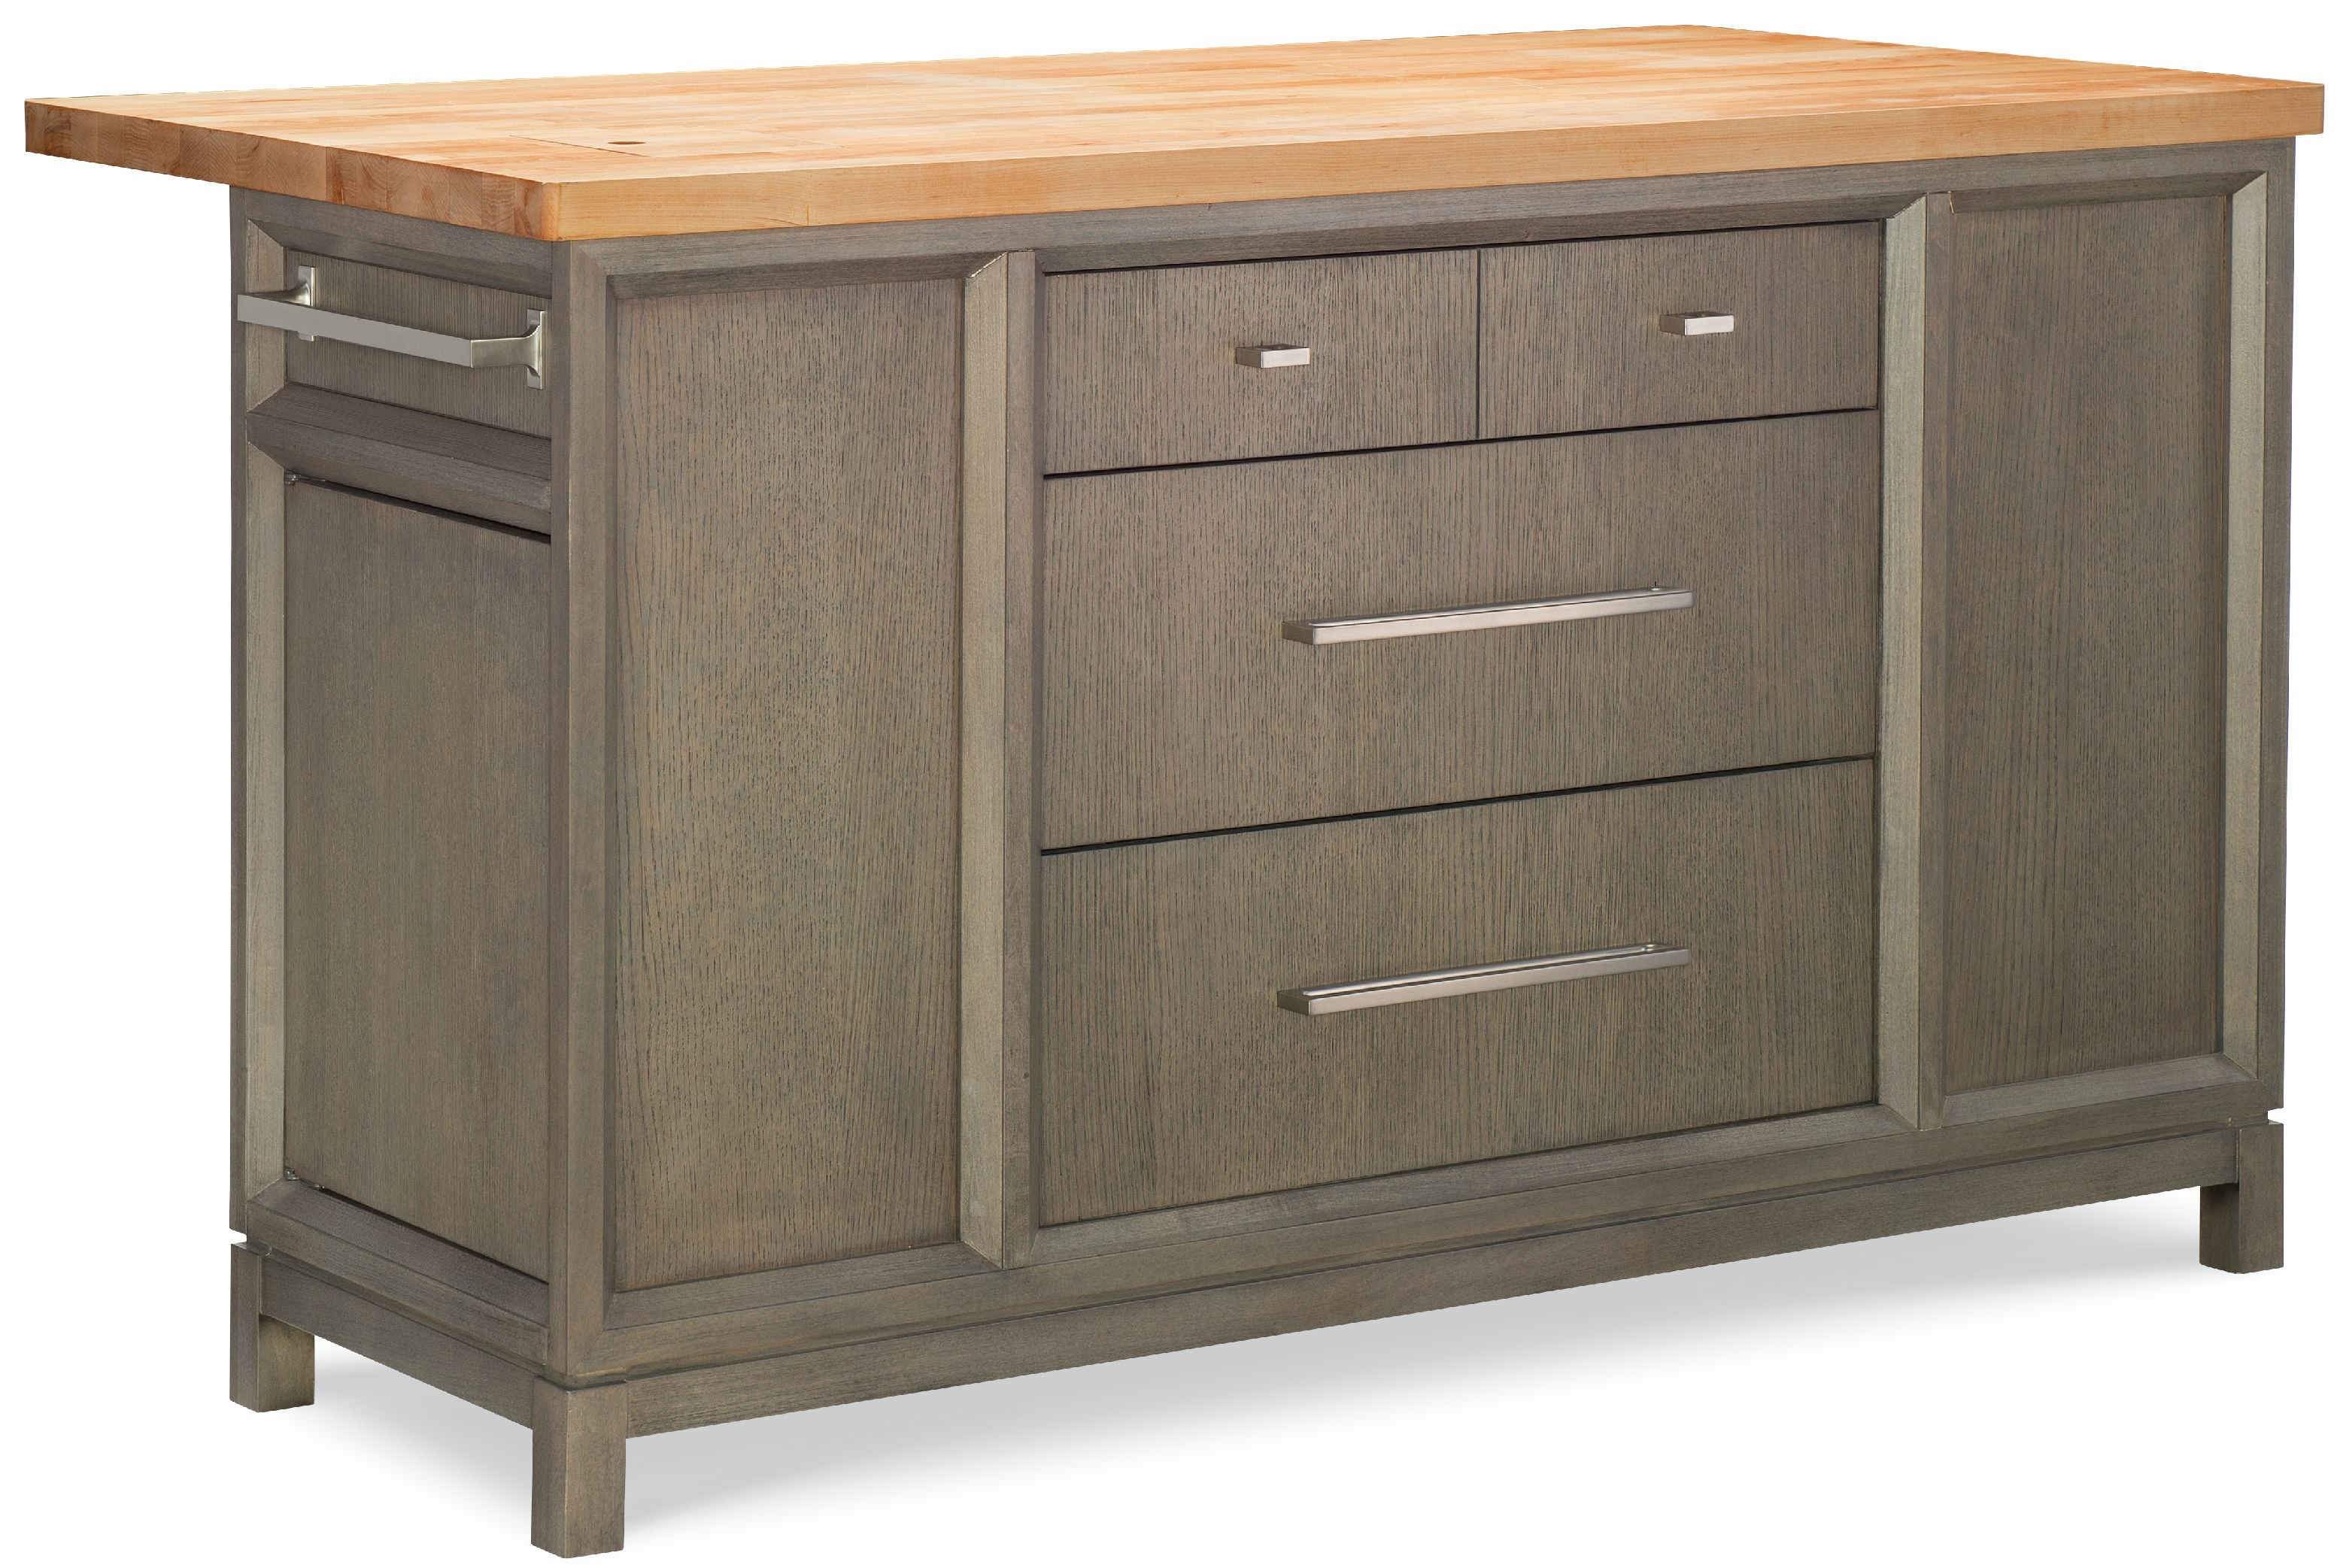 Rachael Ray Home   Highline Kitchen Island